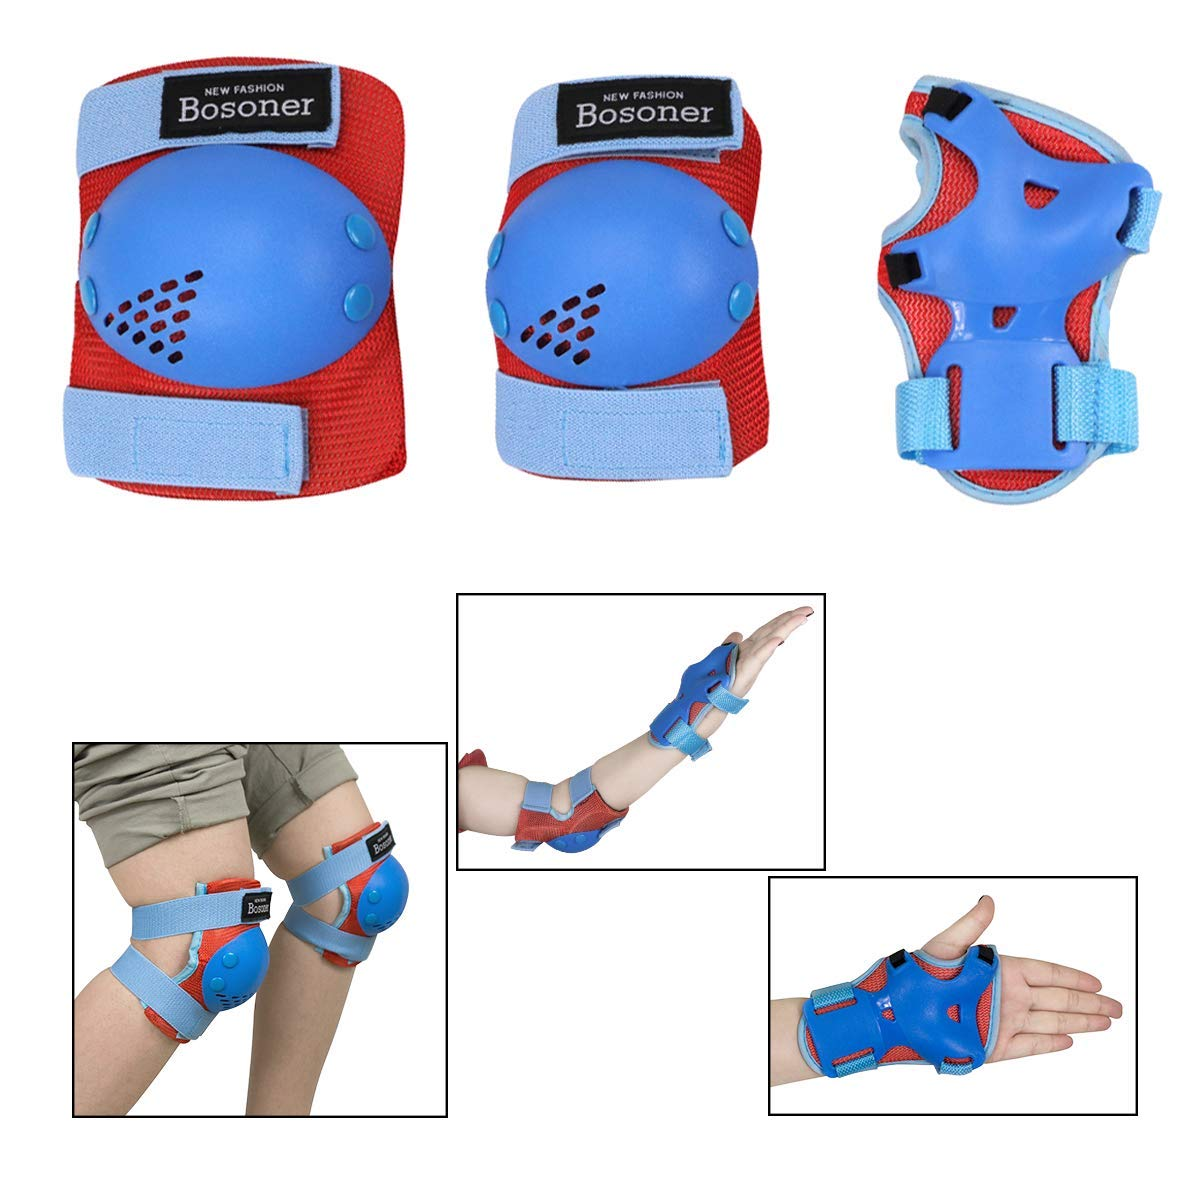 Skating Skatings Scooter Riding Sports Bosoner Kids//Youth Knee Pad Elbow Pads for Rollerblade Roller Skates Cycling BMX Bike Skateboard Inline Rollerblading